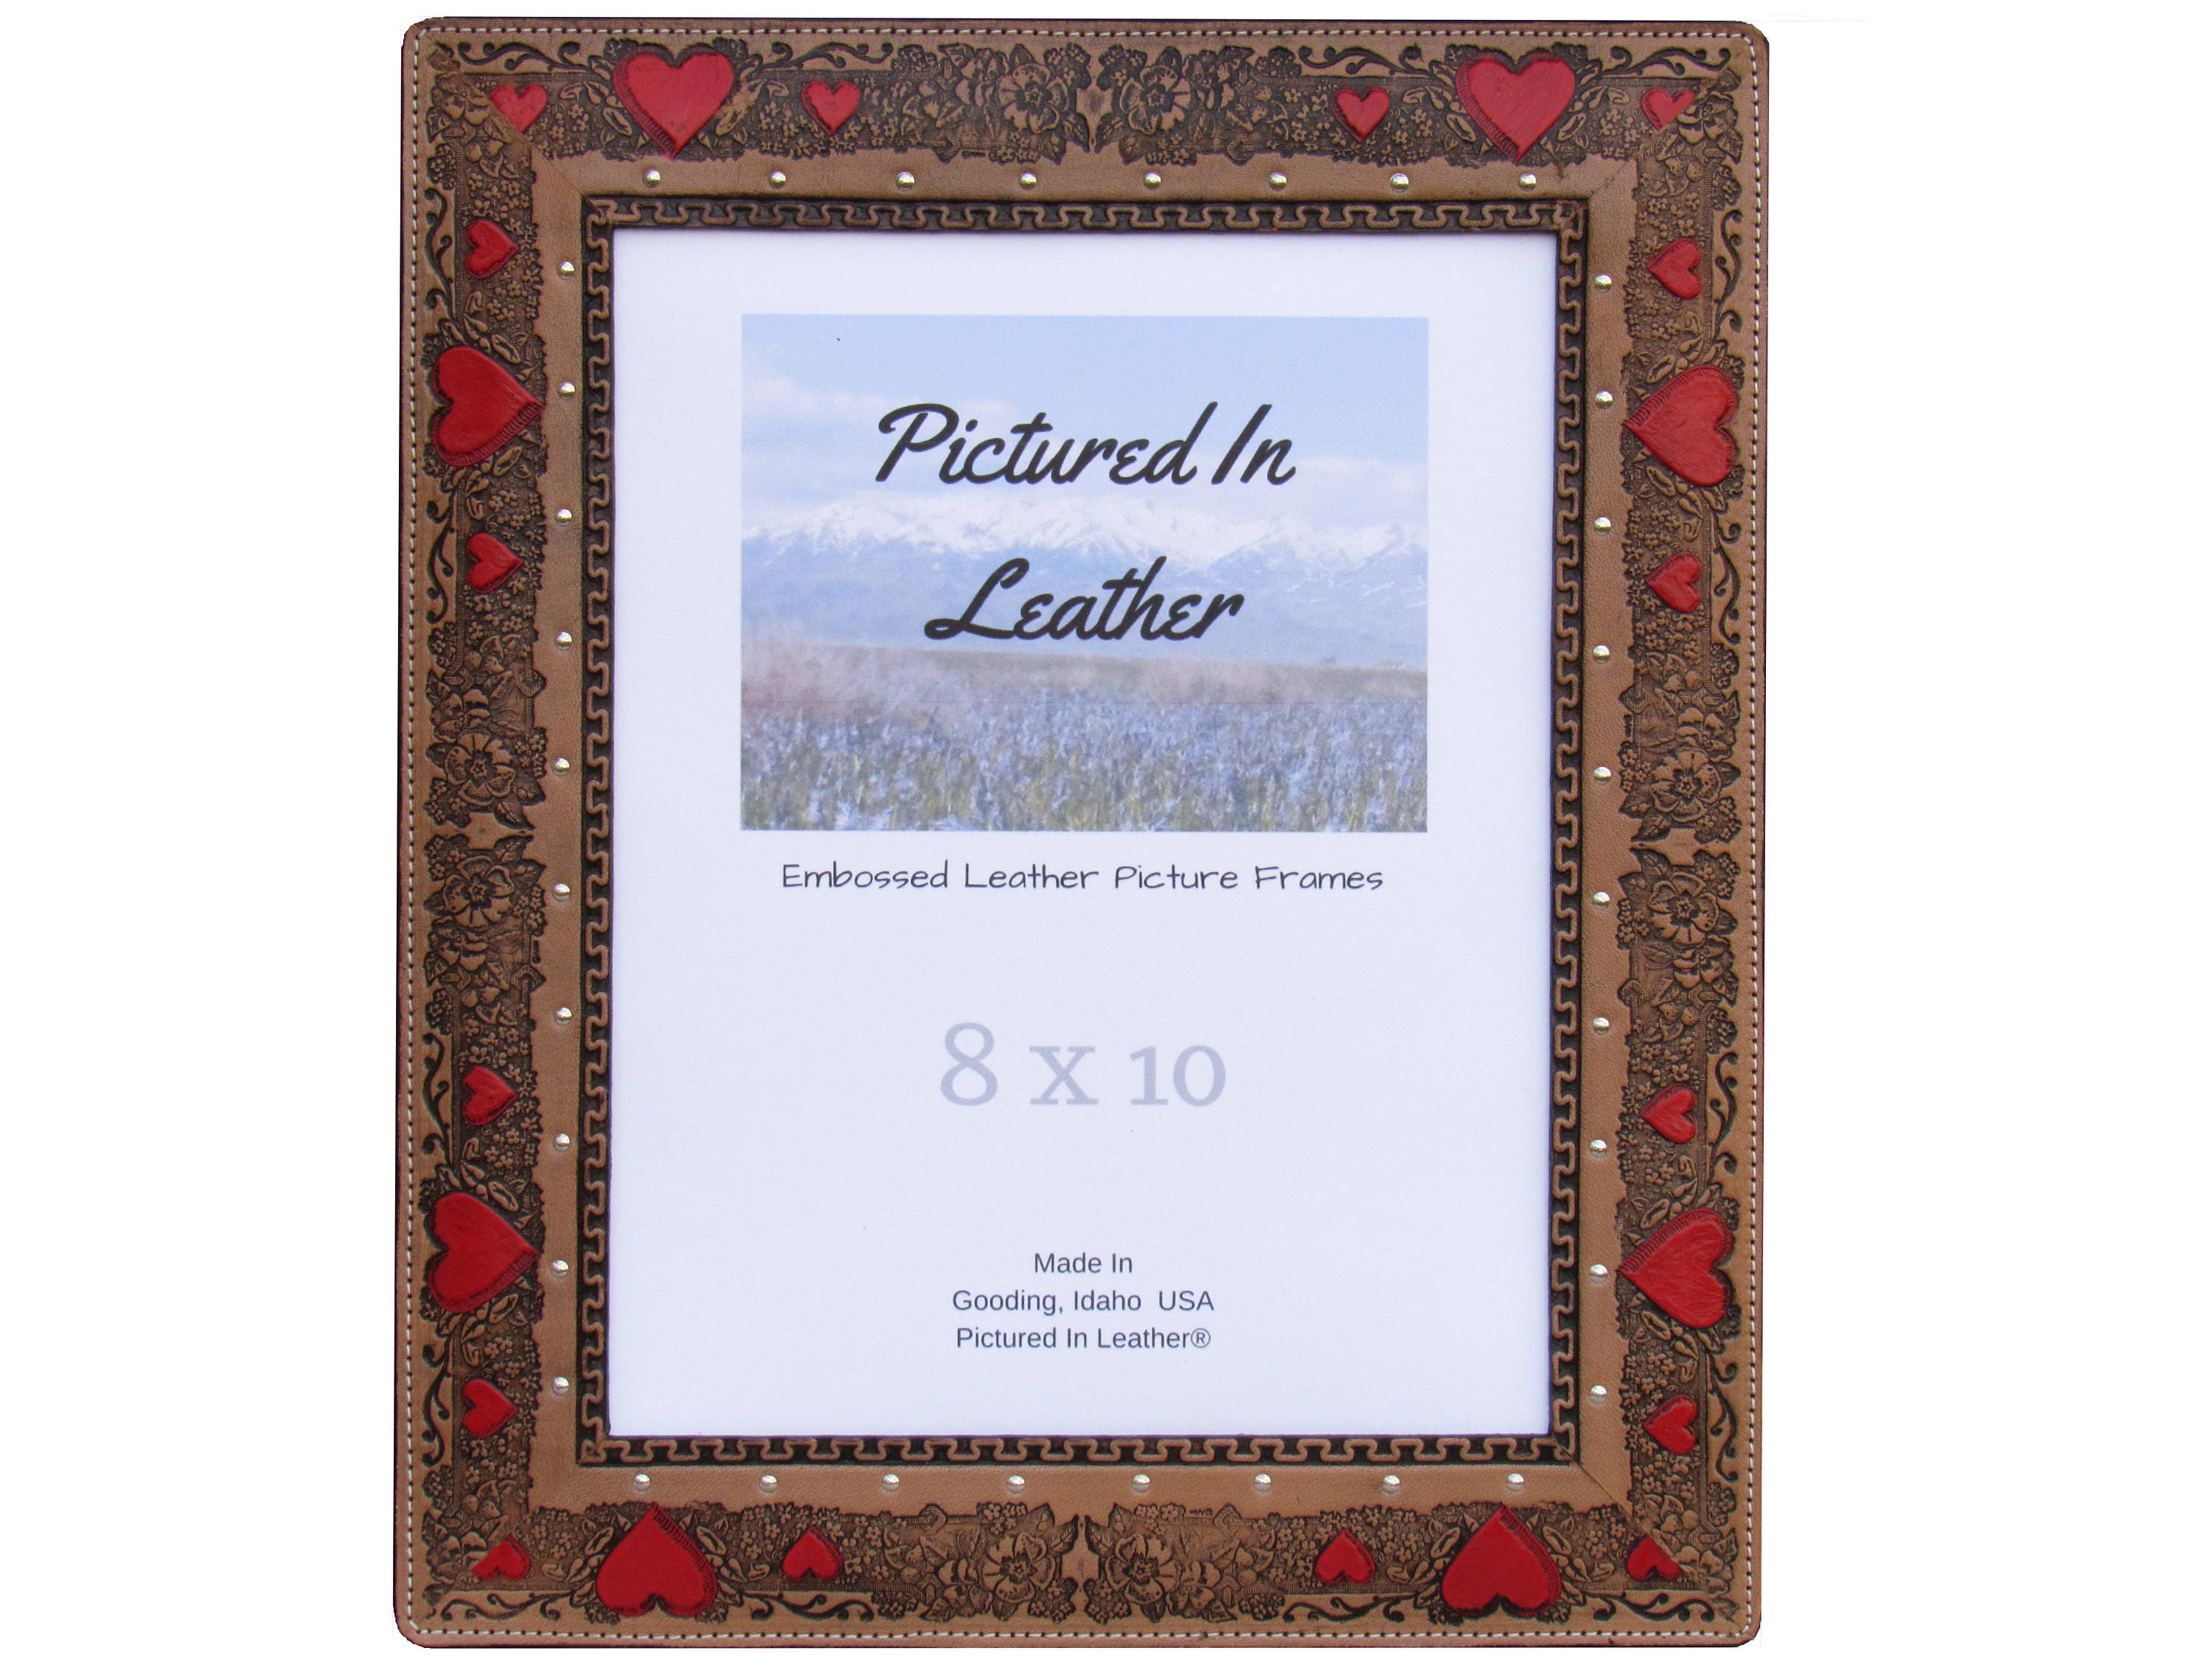 Leather Wedding Anniversary Gifts For Her: Valentines Day Gift For Wife, 8x10 Leather Picture Frame